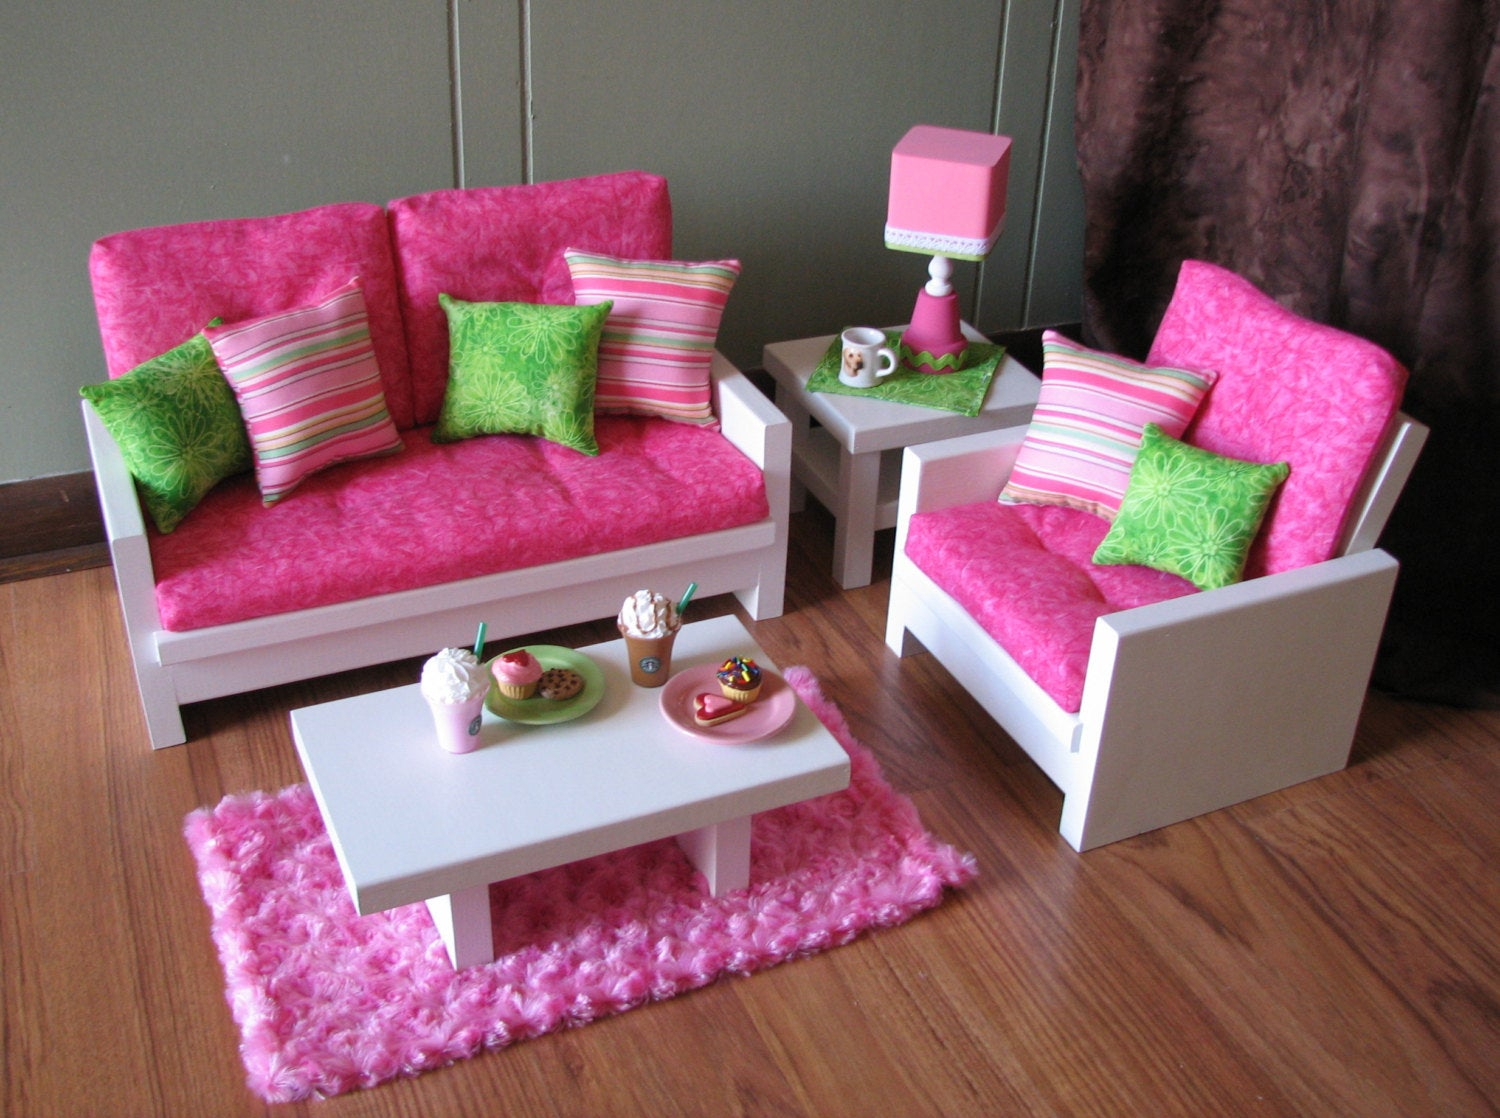 12 Ideas For Living Room Furniture For 18 Inch Dolls Floor regarding 14 Genius Tricks of How to Build 18 Inch Doll Living Room Set